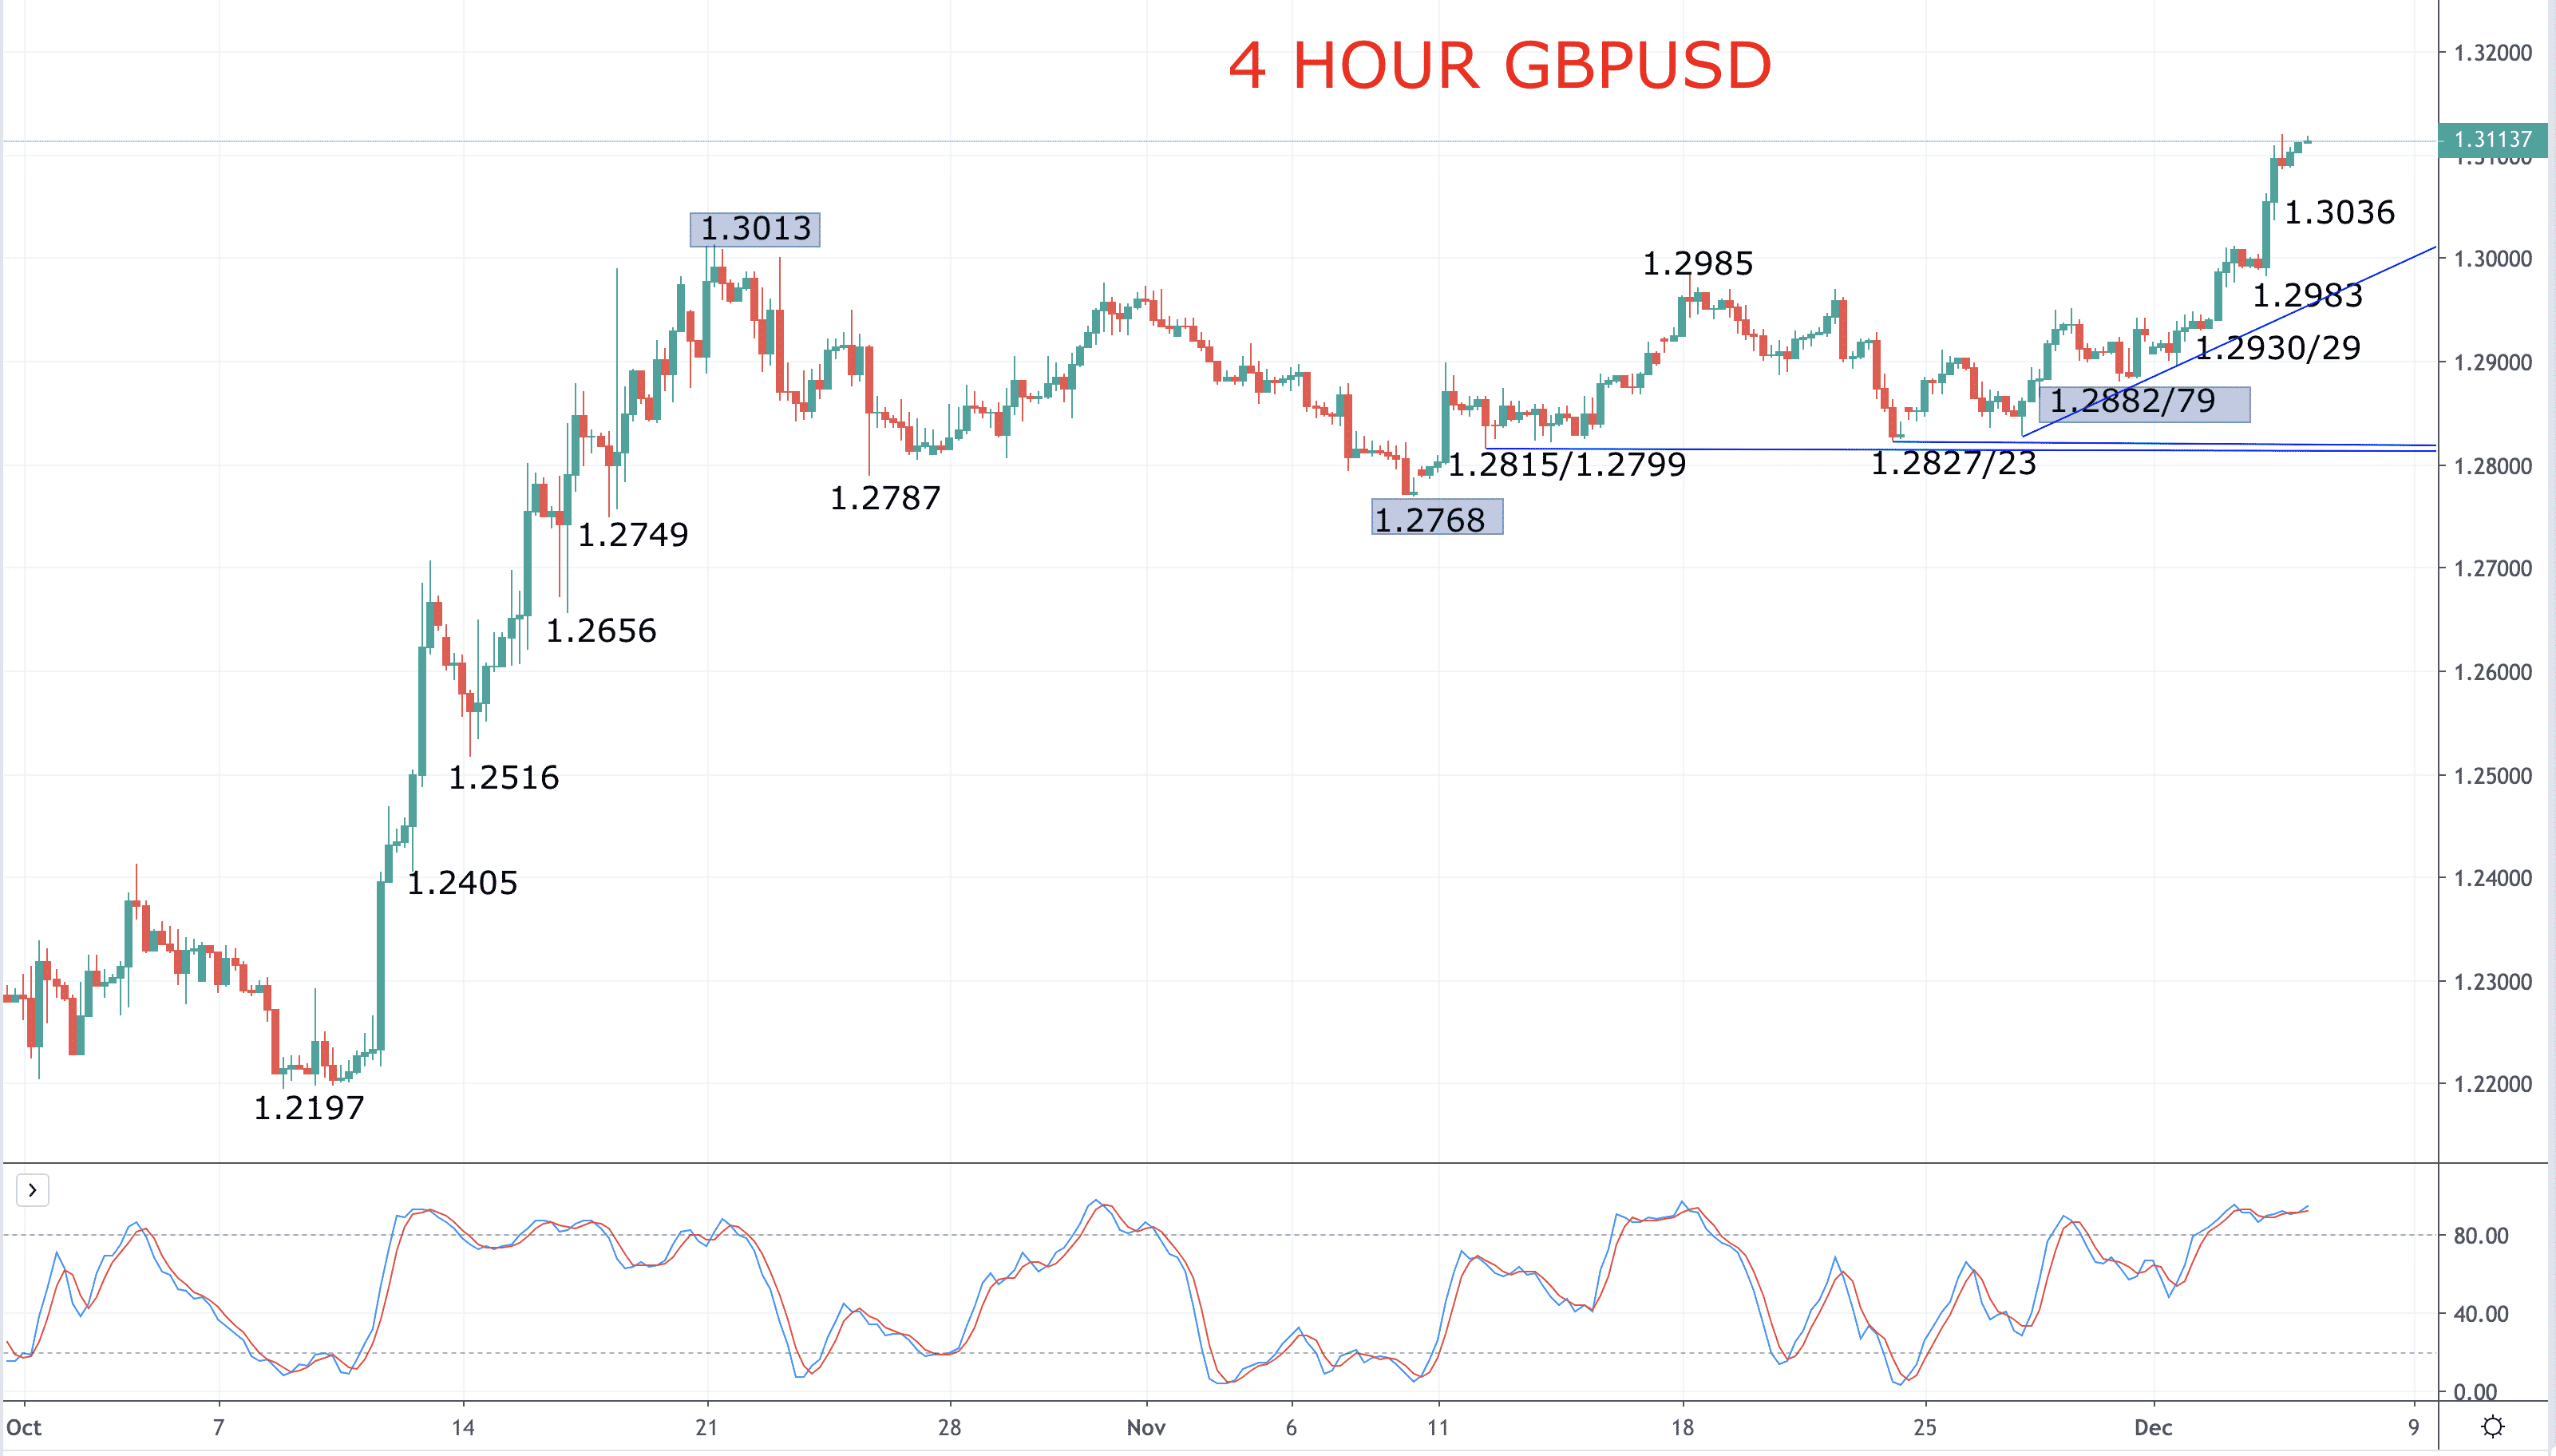 The Pound surges on poll: GBPUSD forecast higher after 1.30 break Image